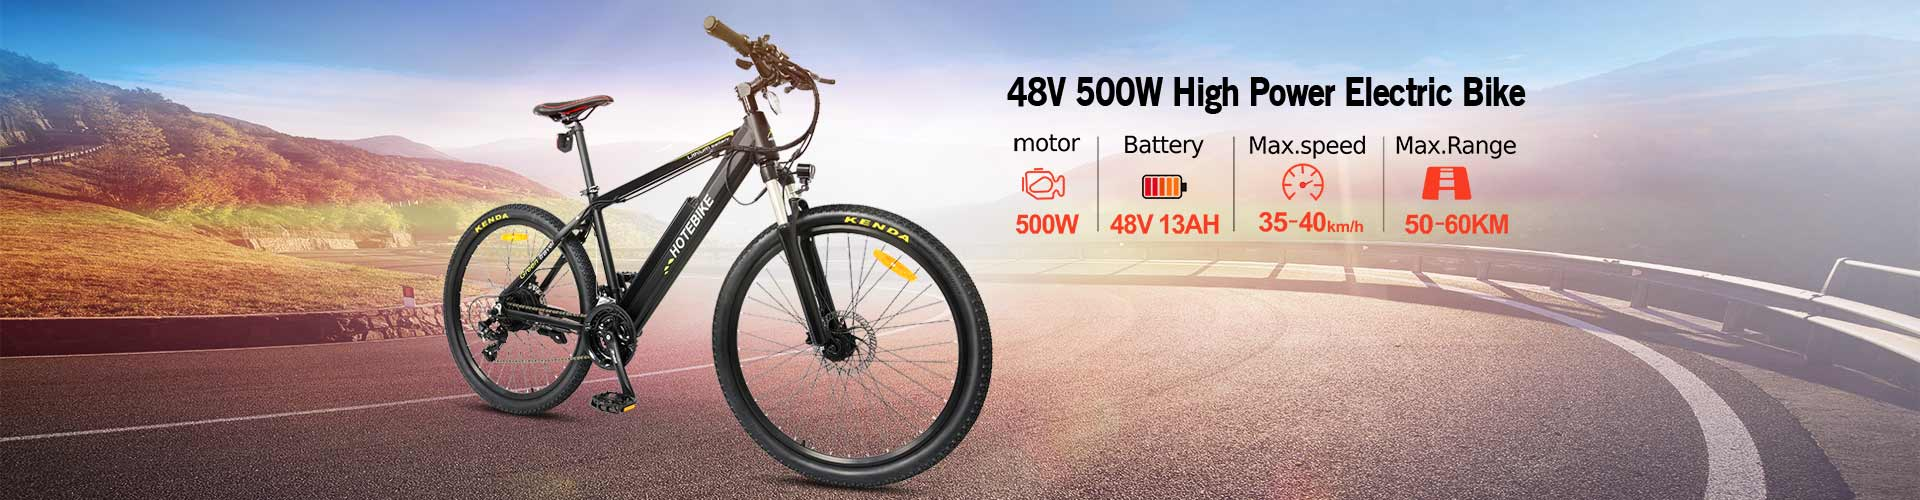 Shuangye electric bike catalog